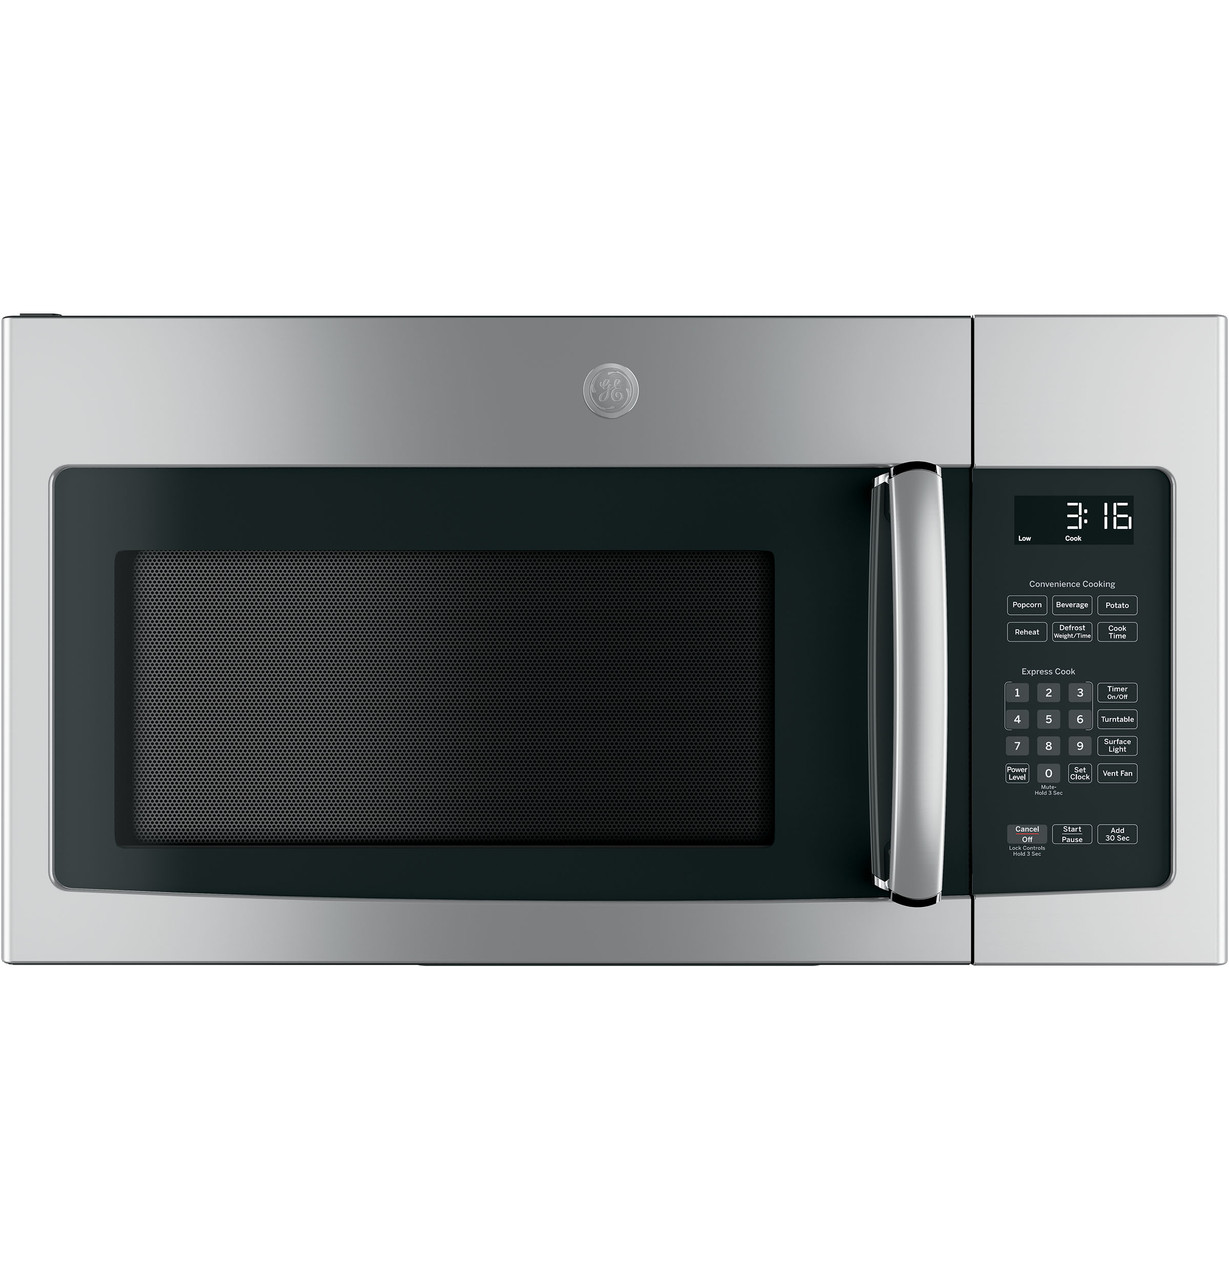 ge 1 6 cu ft over the range microwave oven with recirculating venting jnm3163rjss